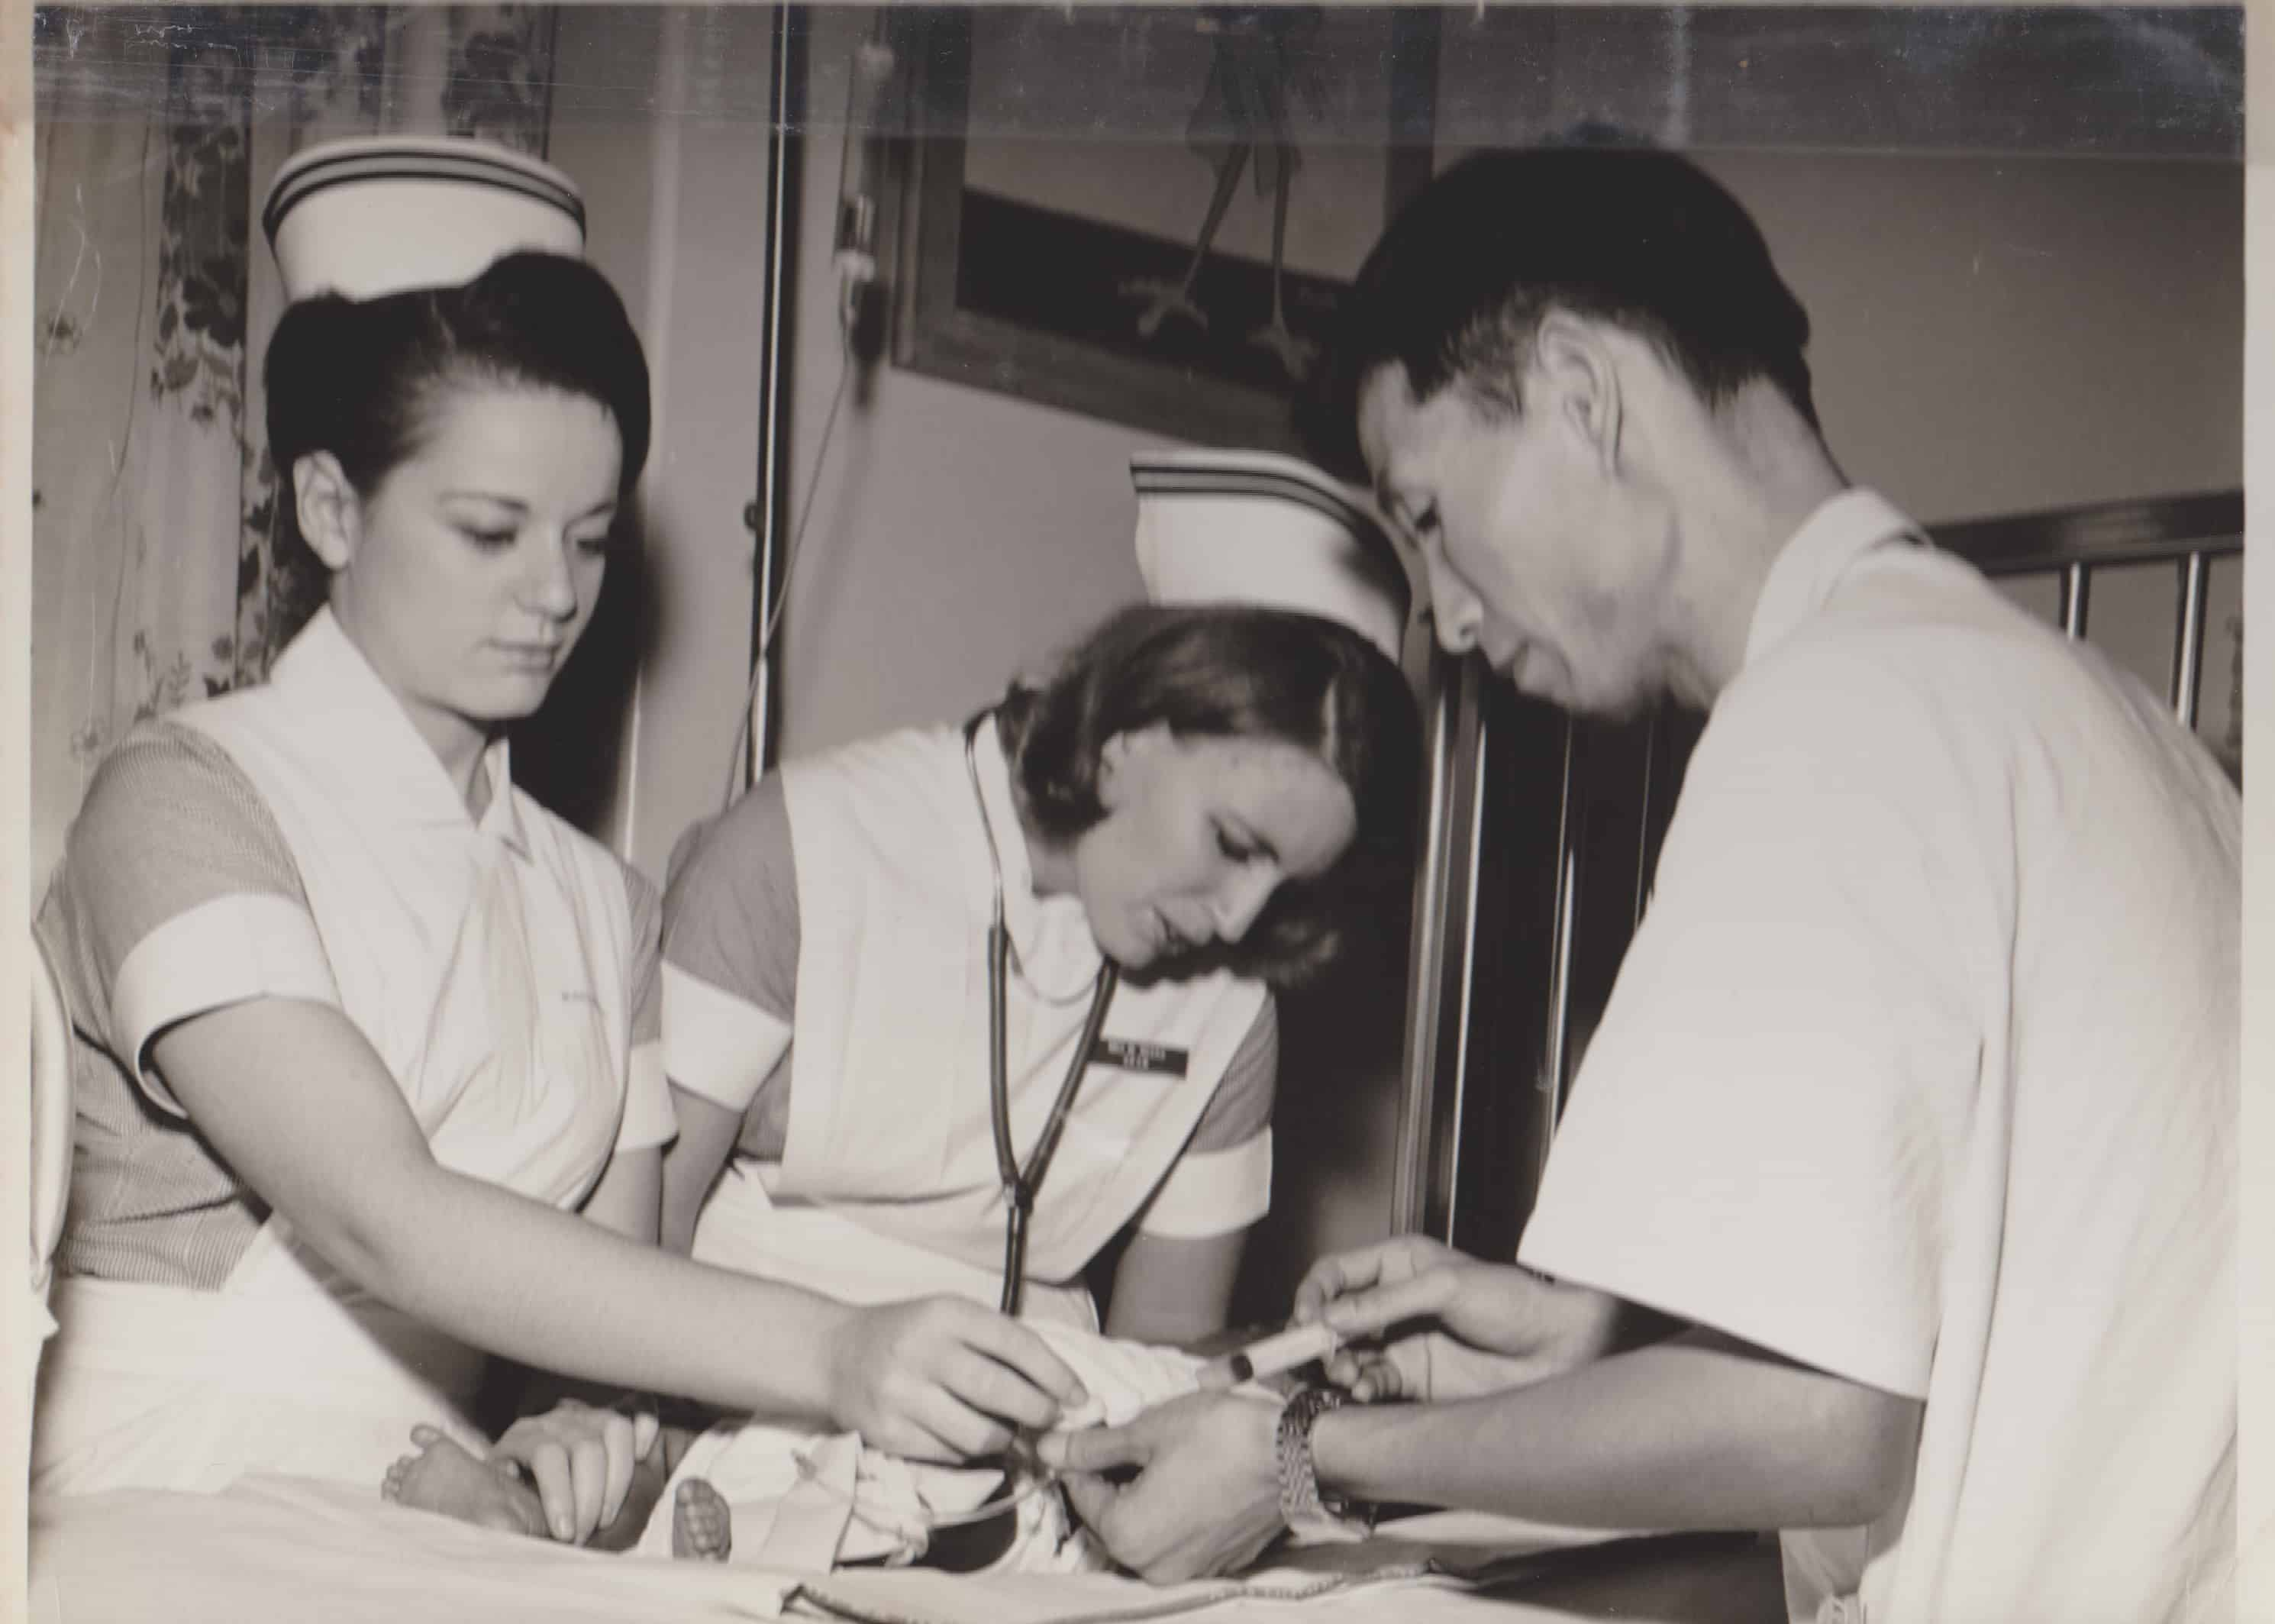 From a young age, Elaine Fendell, left, talked about becoming a nurse and helping people.